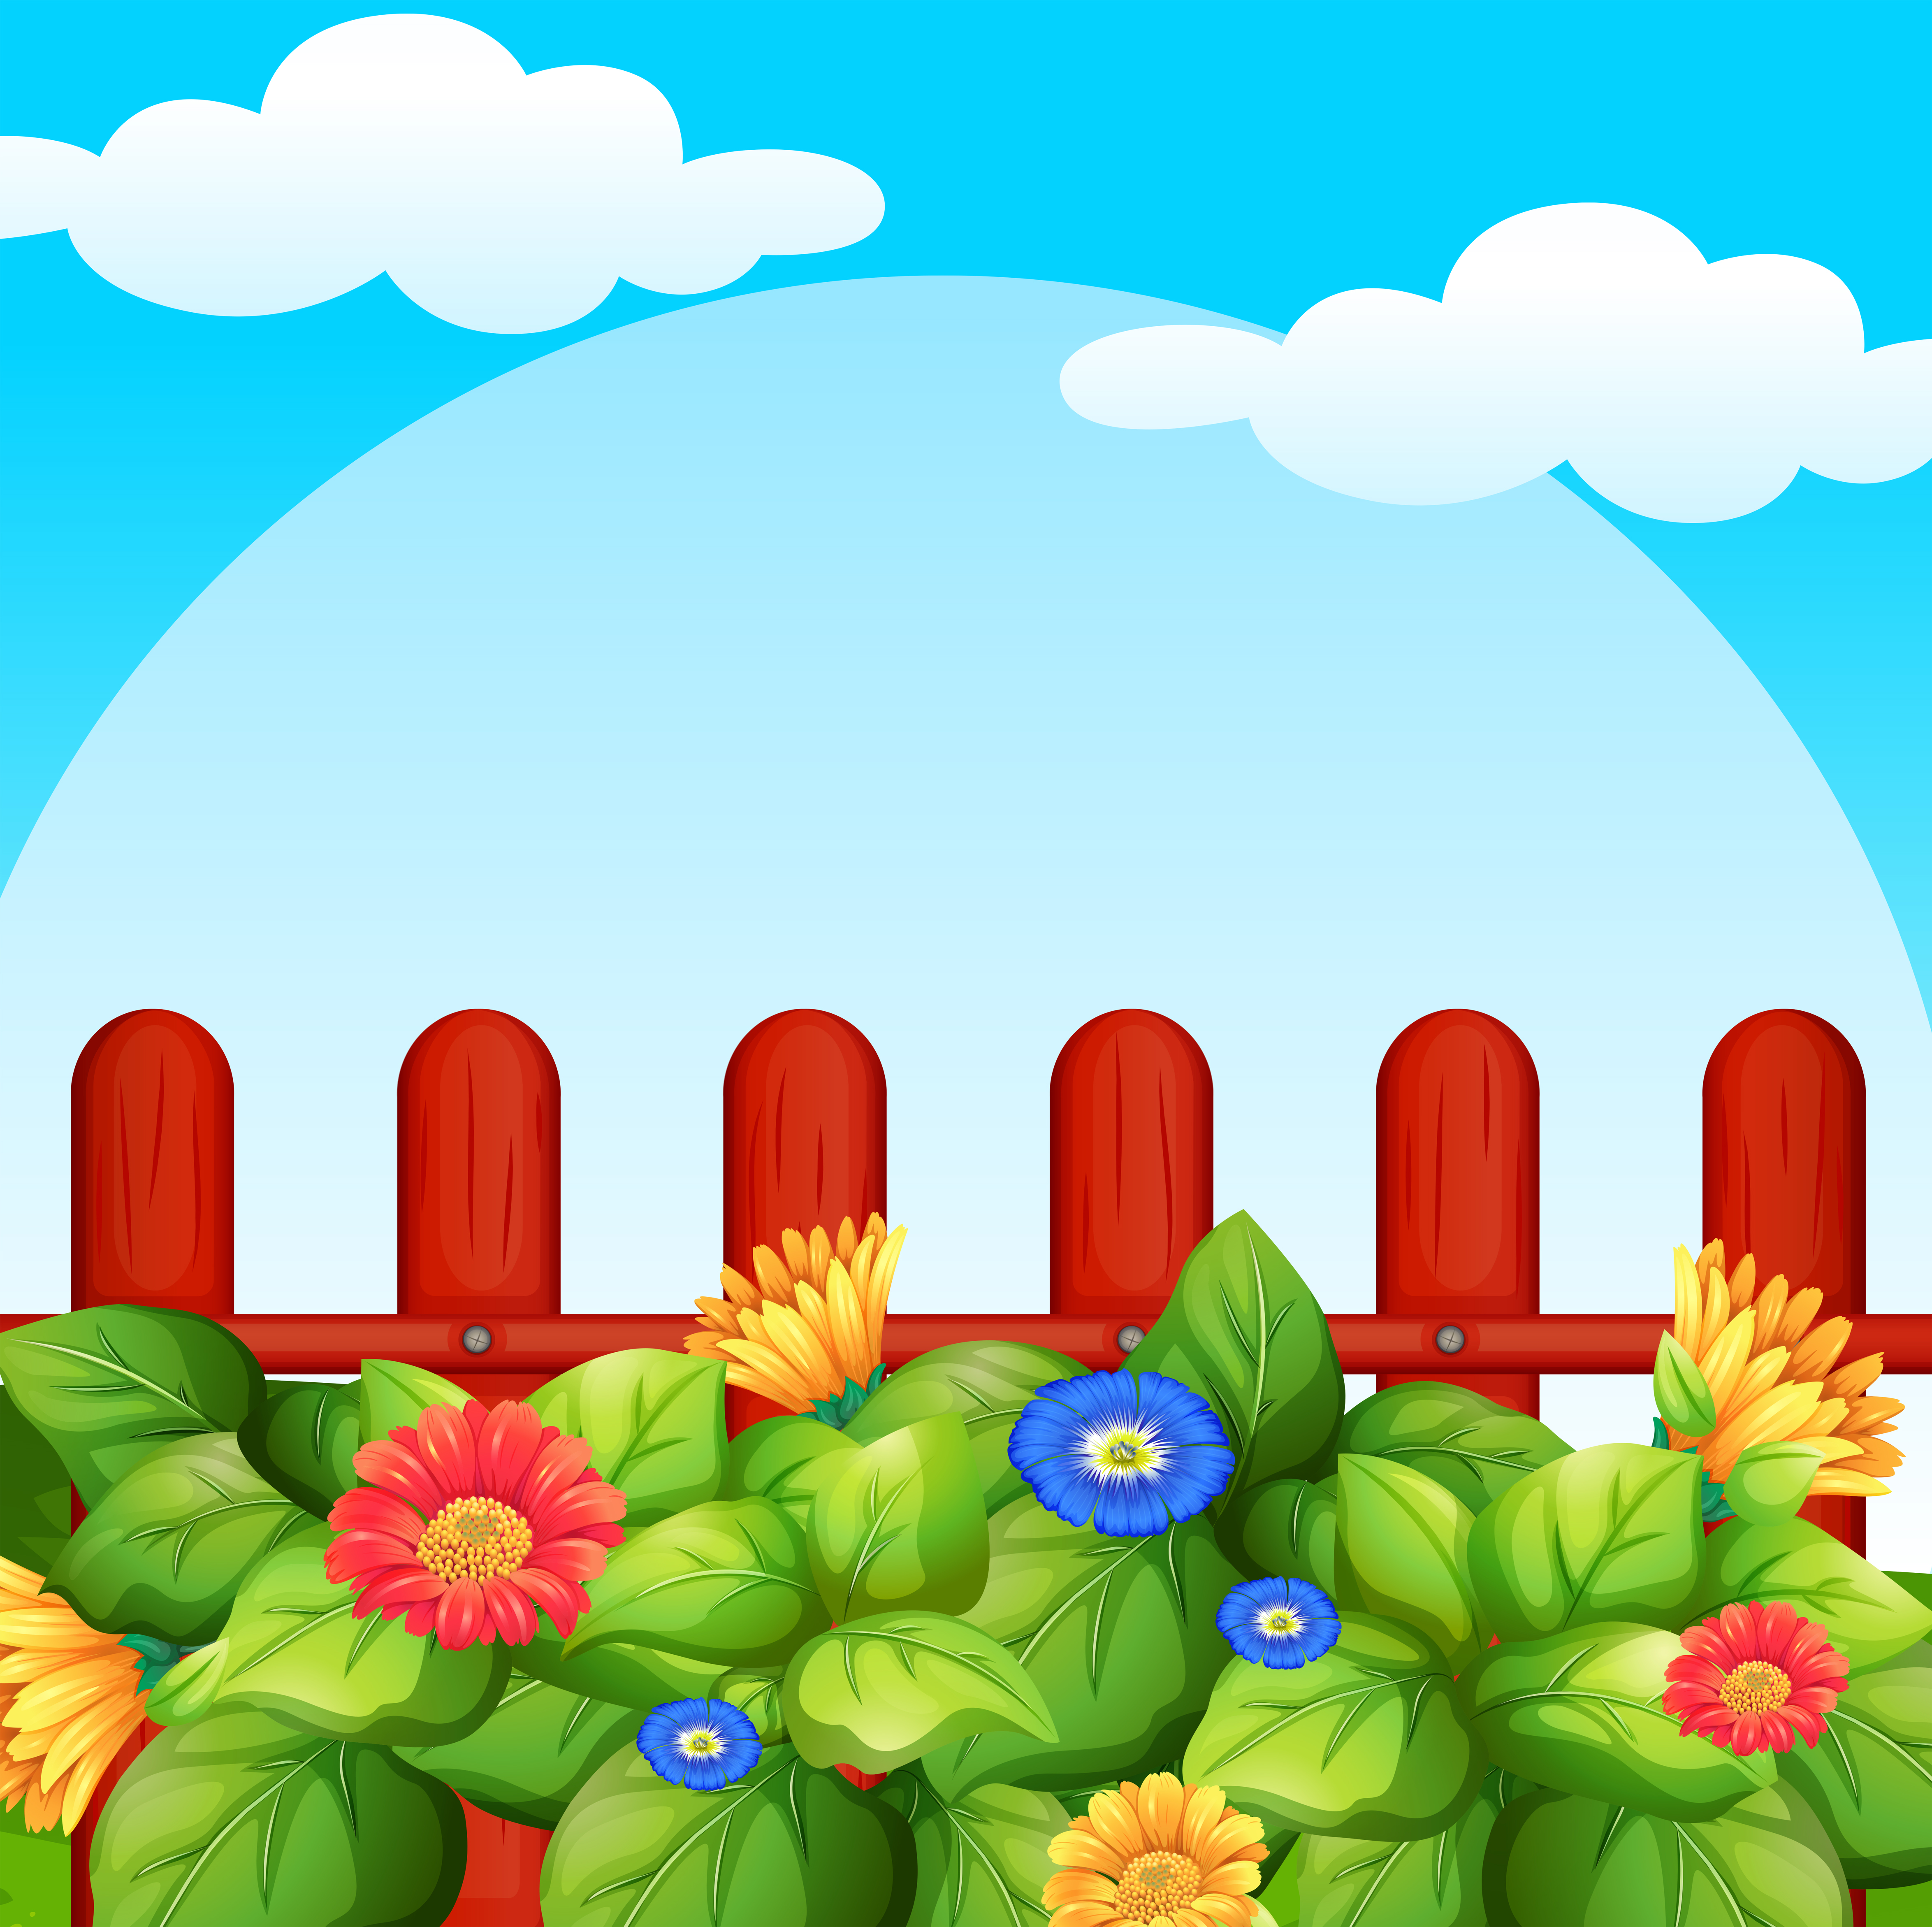 Background scene with flowers in garden - Download Free ...